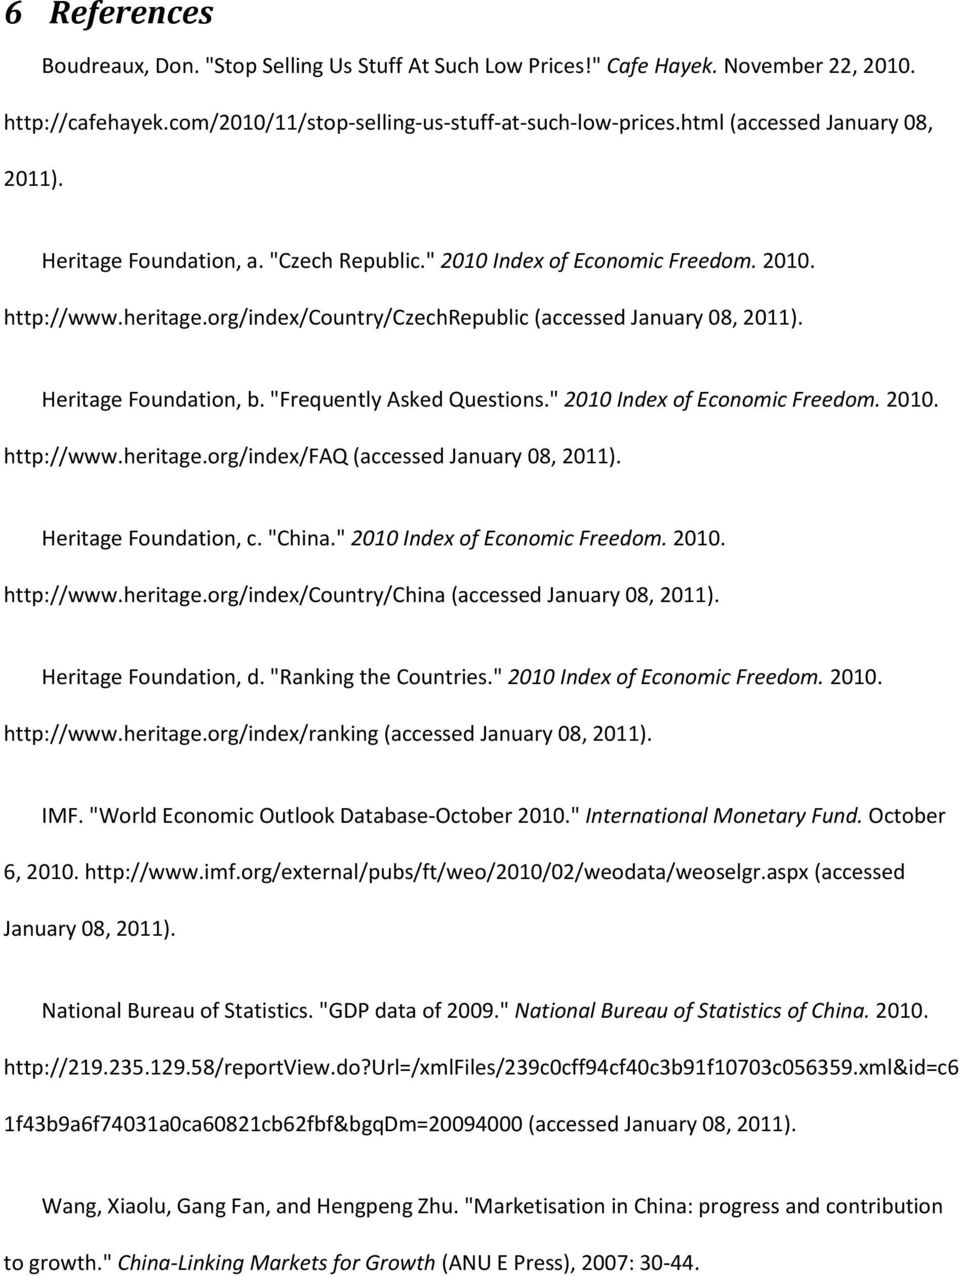 "Heritage Foundation, b. ""Frequently Asked Questions."" 2010 Index of Economic Freedom. 2010. http://www.heritage.org/index/faq (accessed January 08, 2011). Heritage Foundation, c. ""China."